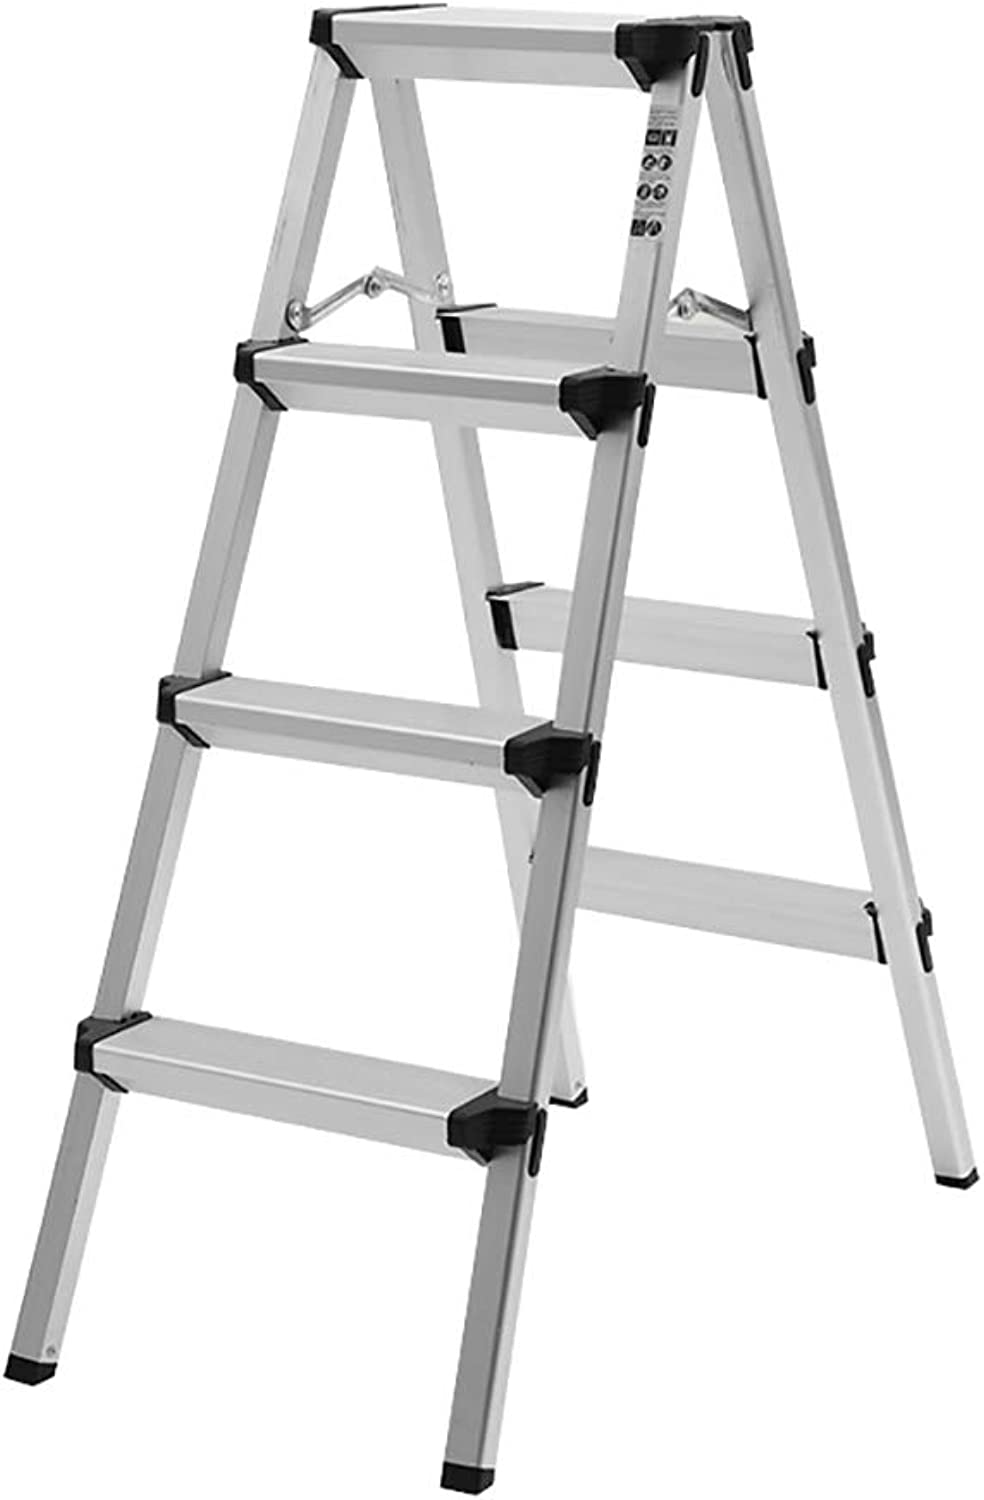 Qing MEI Ladder Household Folding Ladder Aluminum Alloy Thickening Indoor Ladder Four Or Five Step Ladder Stool Multi-Function Escalator Stairs A+ (Size   4 Steps)